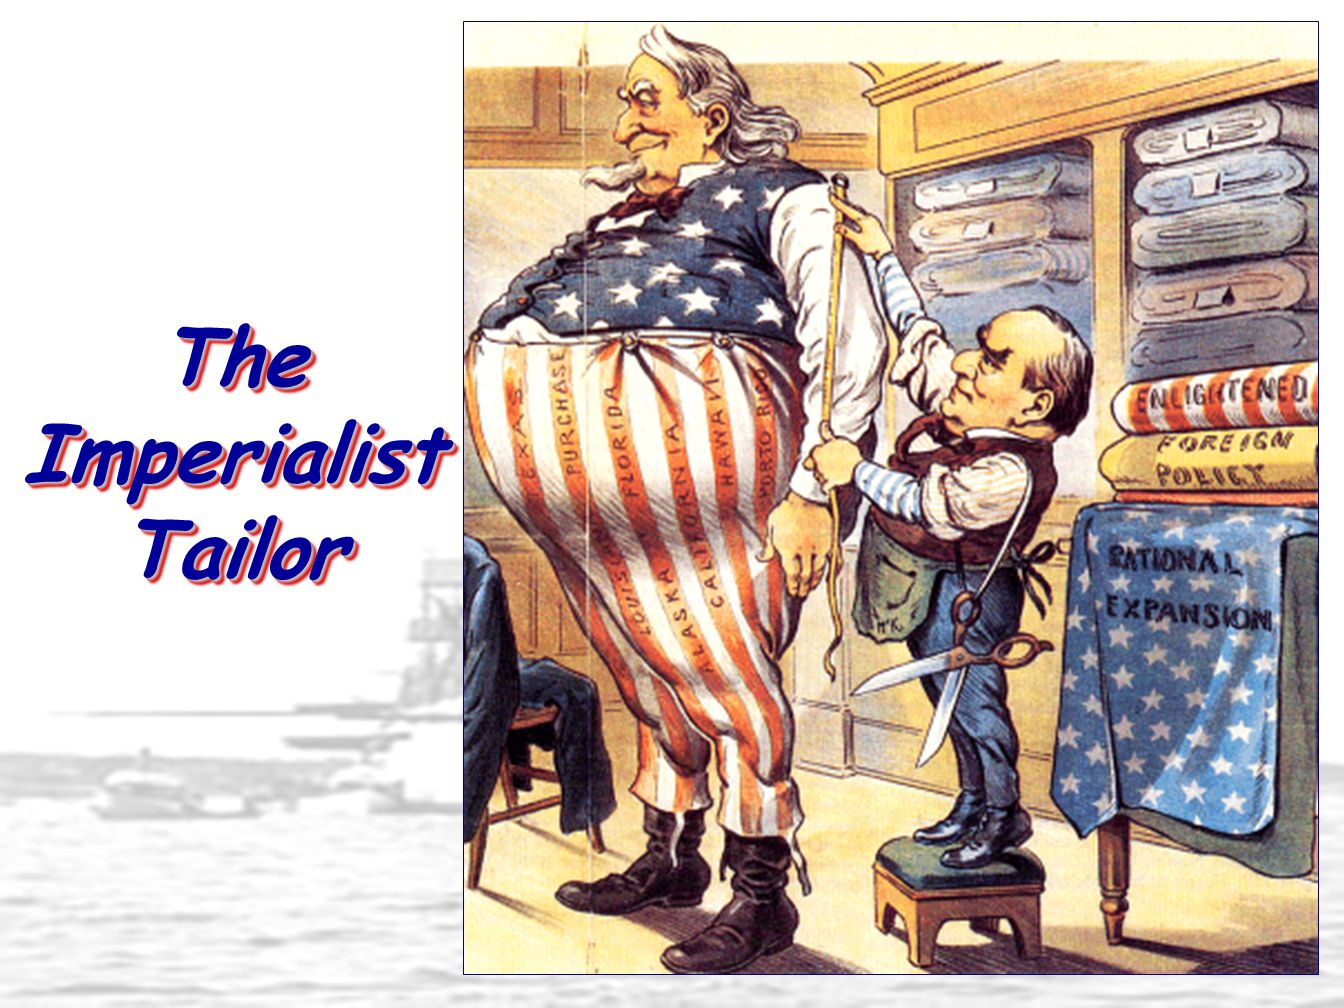 The Imperialist Tailor